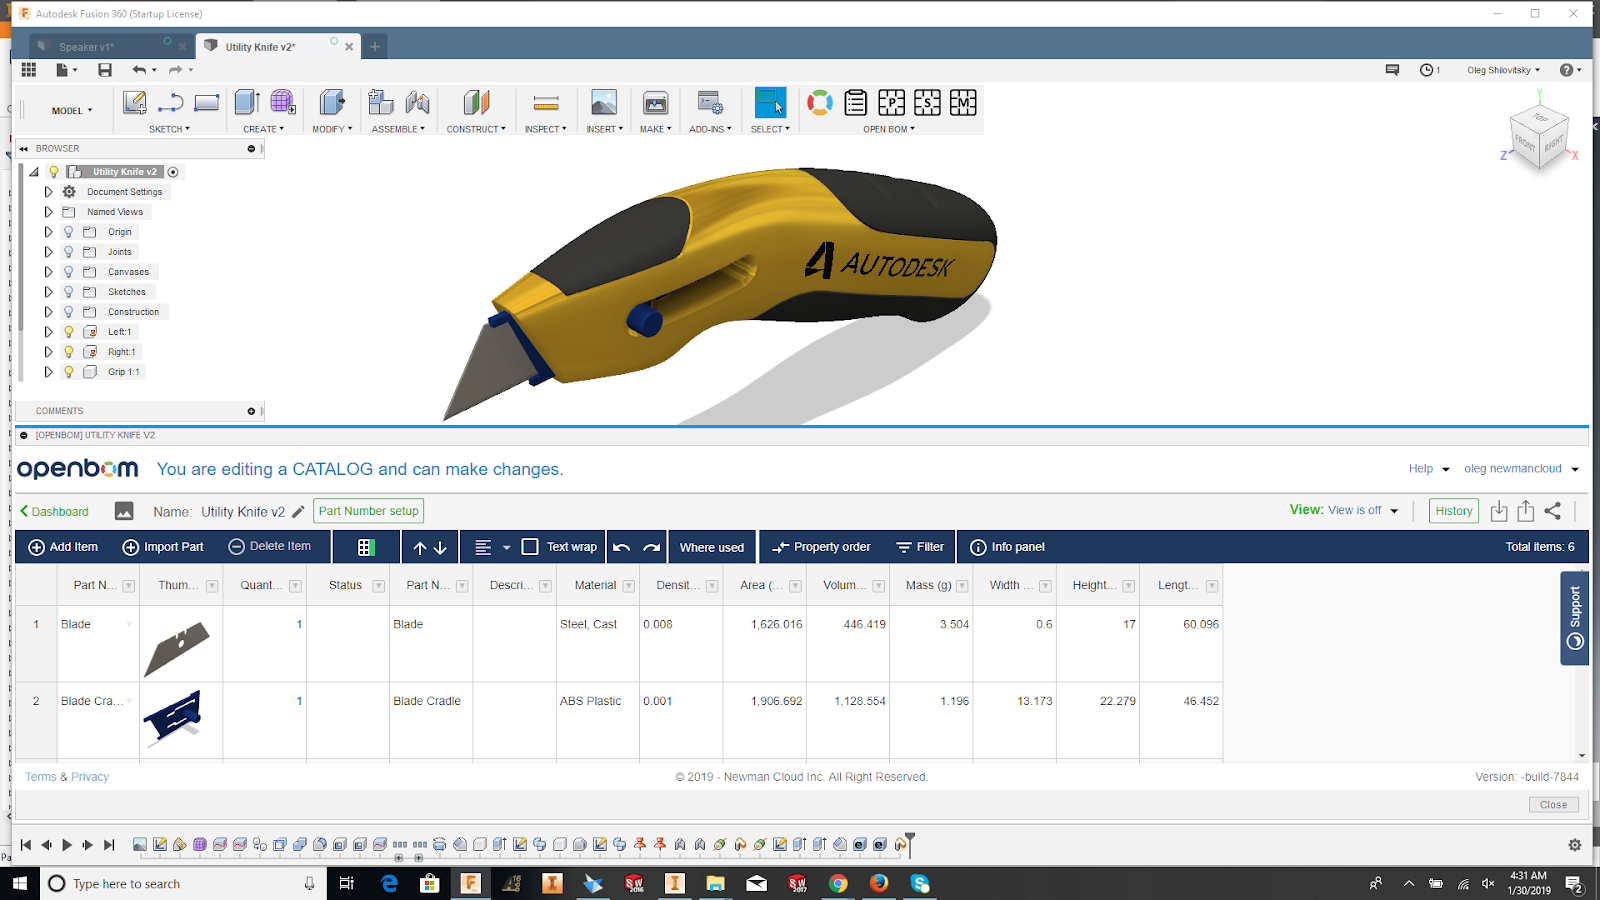 Heads up — Enhancing Catalog Functions to OpenBOM CAD plug